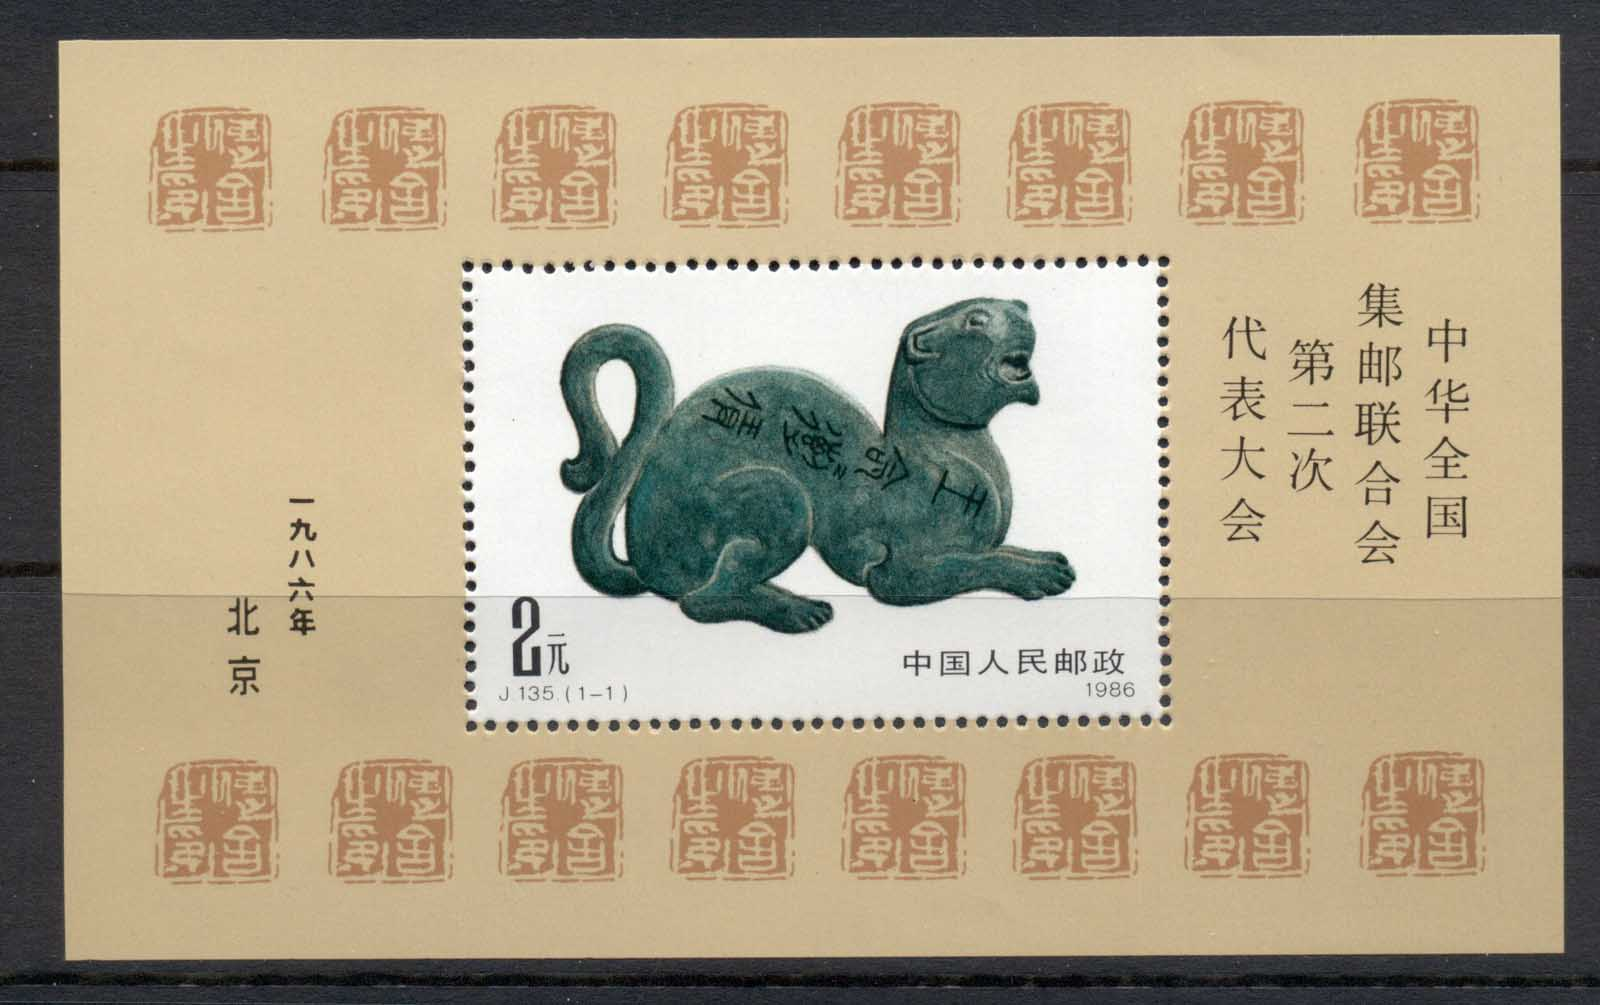 China PRC 1986 2nd Congress of All-China Philatelic Federation, Bronze Tiger MS MUH